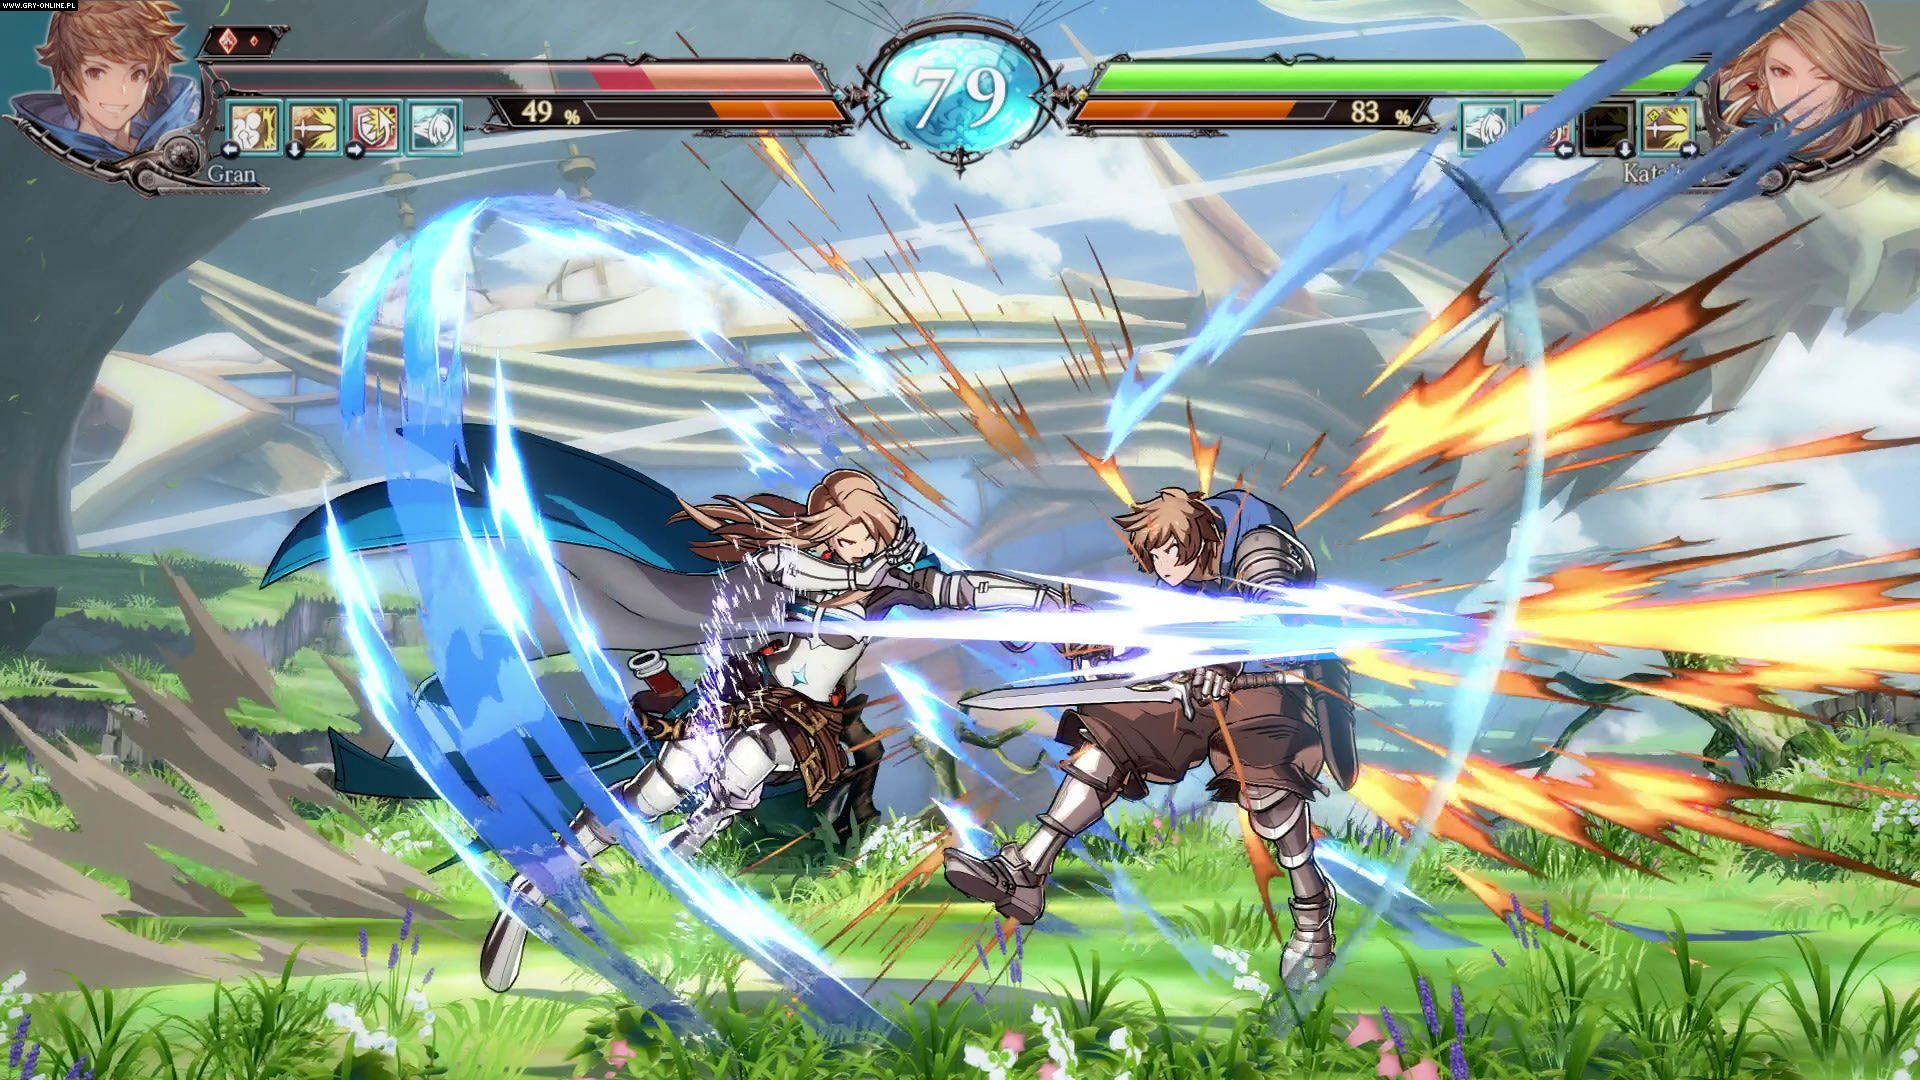 Granblue Fantasy Versus PC, PS4 Gry Screen 31/93, Arc System Works, Cygames